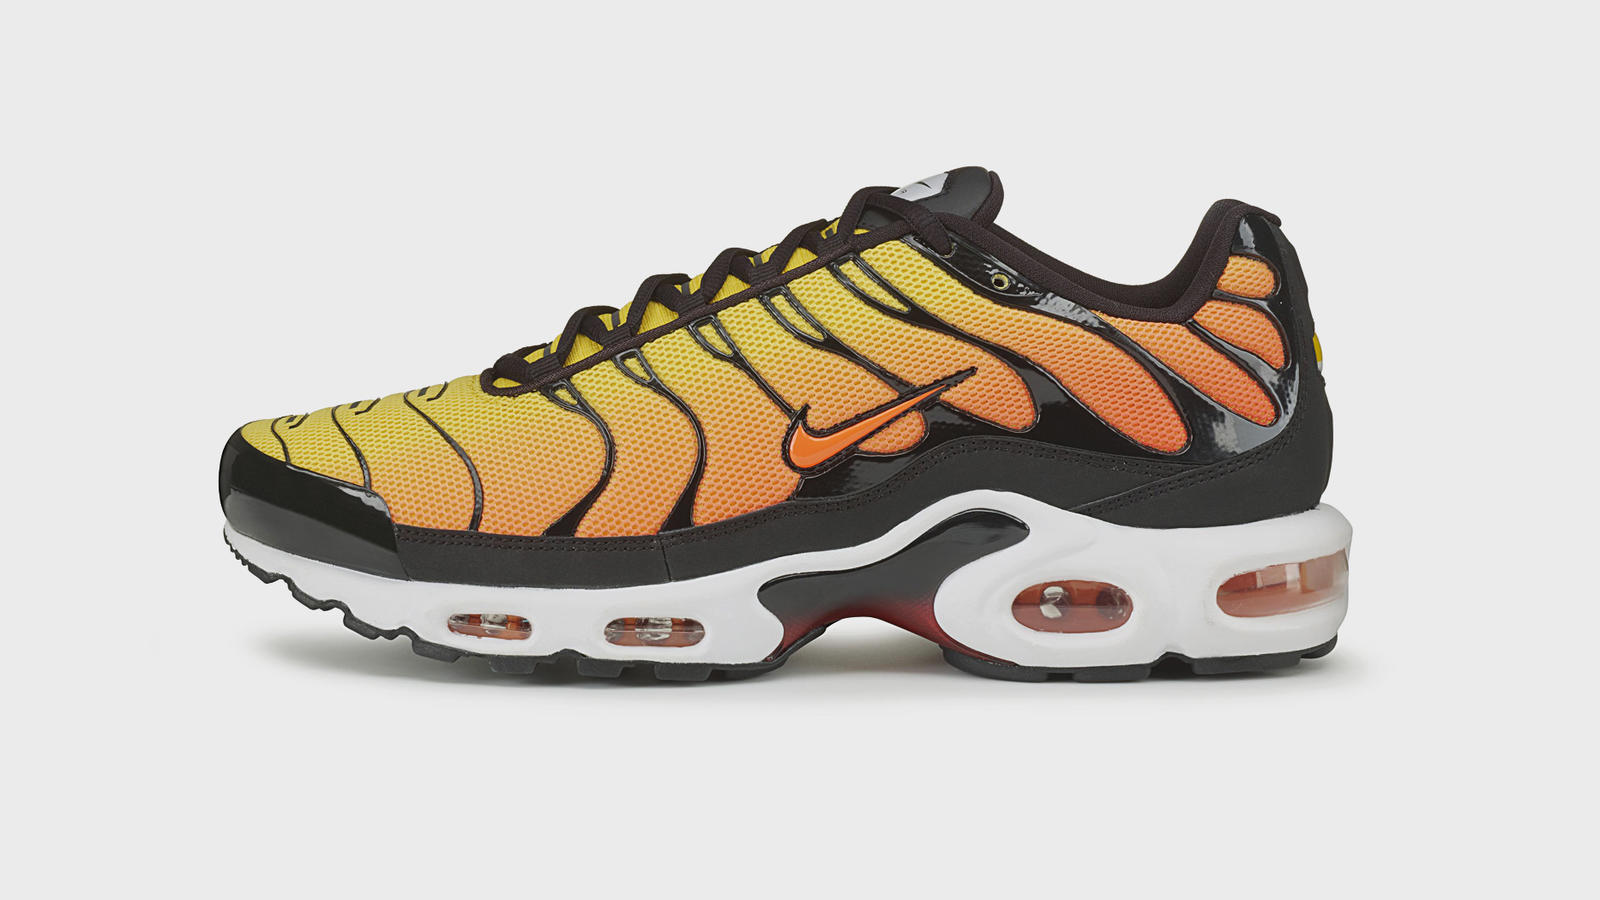 best value 8f501 5d719 Nike Air Max Plus TN History - Nike News